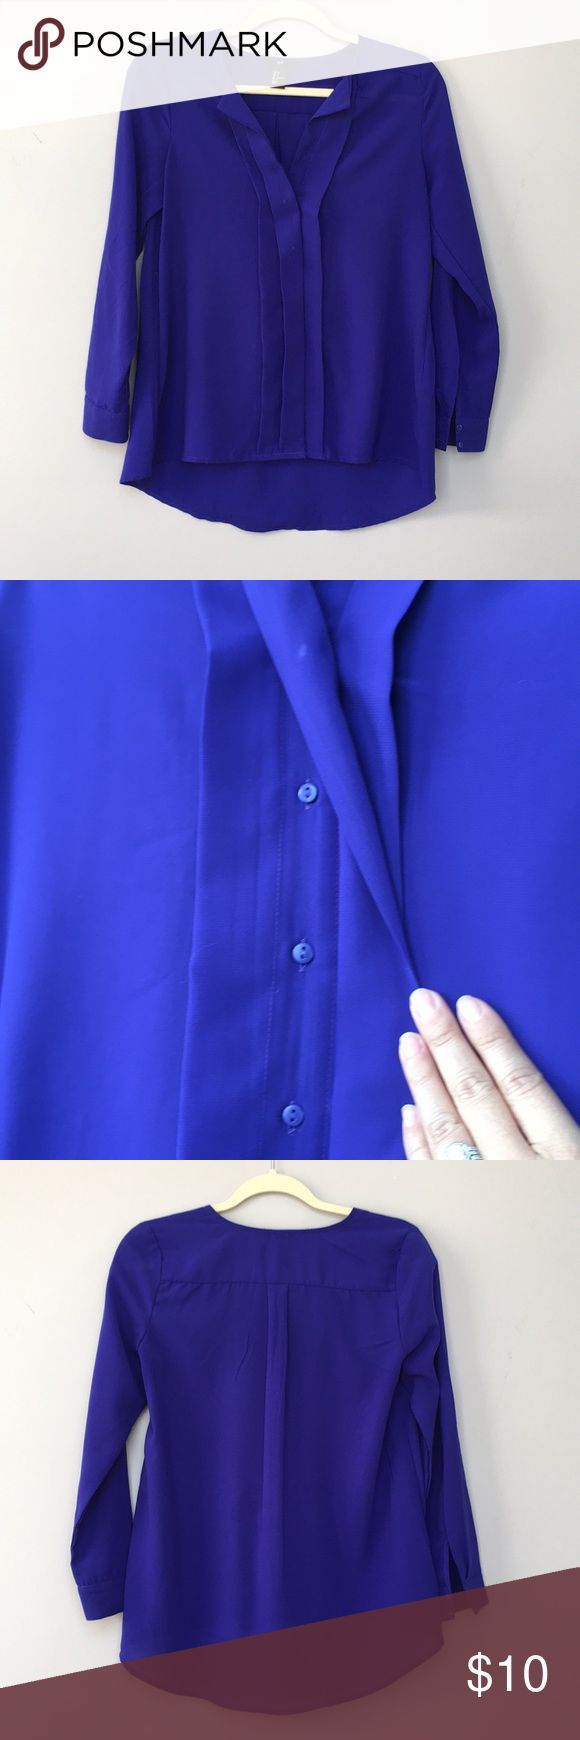 "H&M royal blue blouse Royal blue button down blouse from H&M. Has two buttons on each sleeve. Has ""ruffle"" front that hide Buttons. There look to be button marks in front from ironing, they just look like buttons when wearing. H&M Tops Blouses"